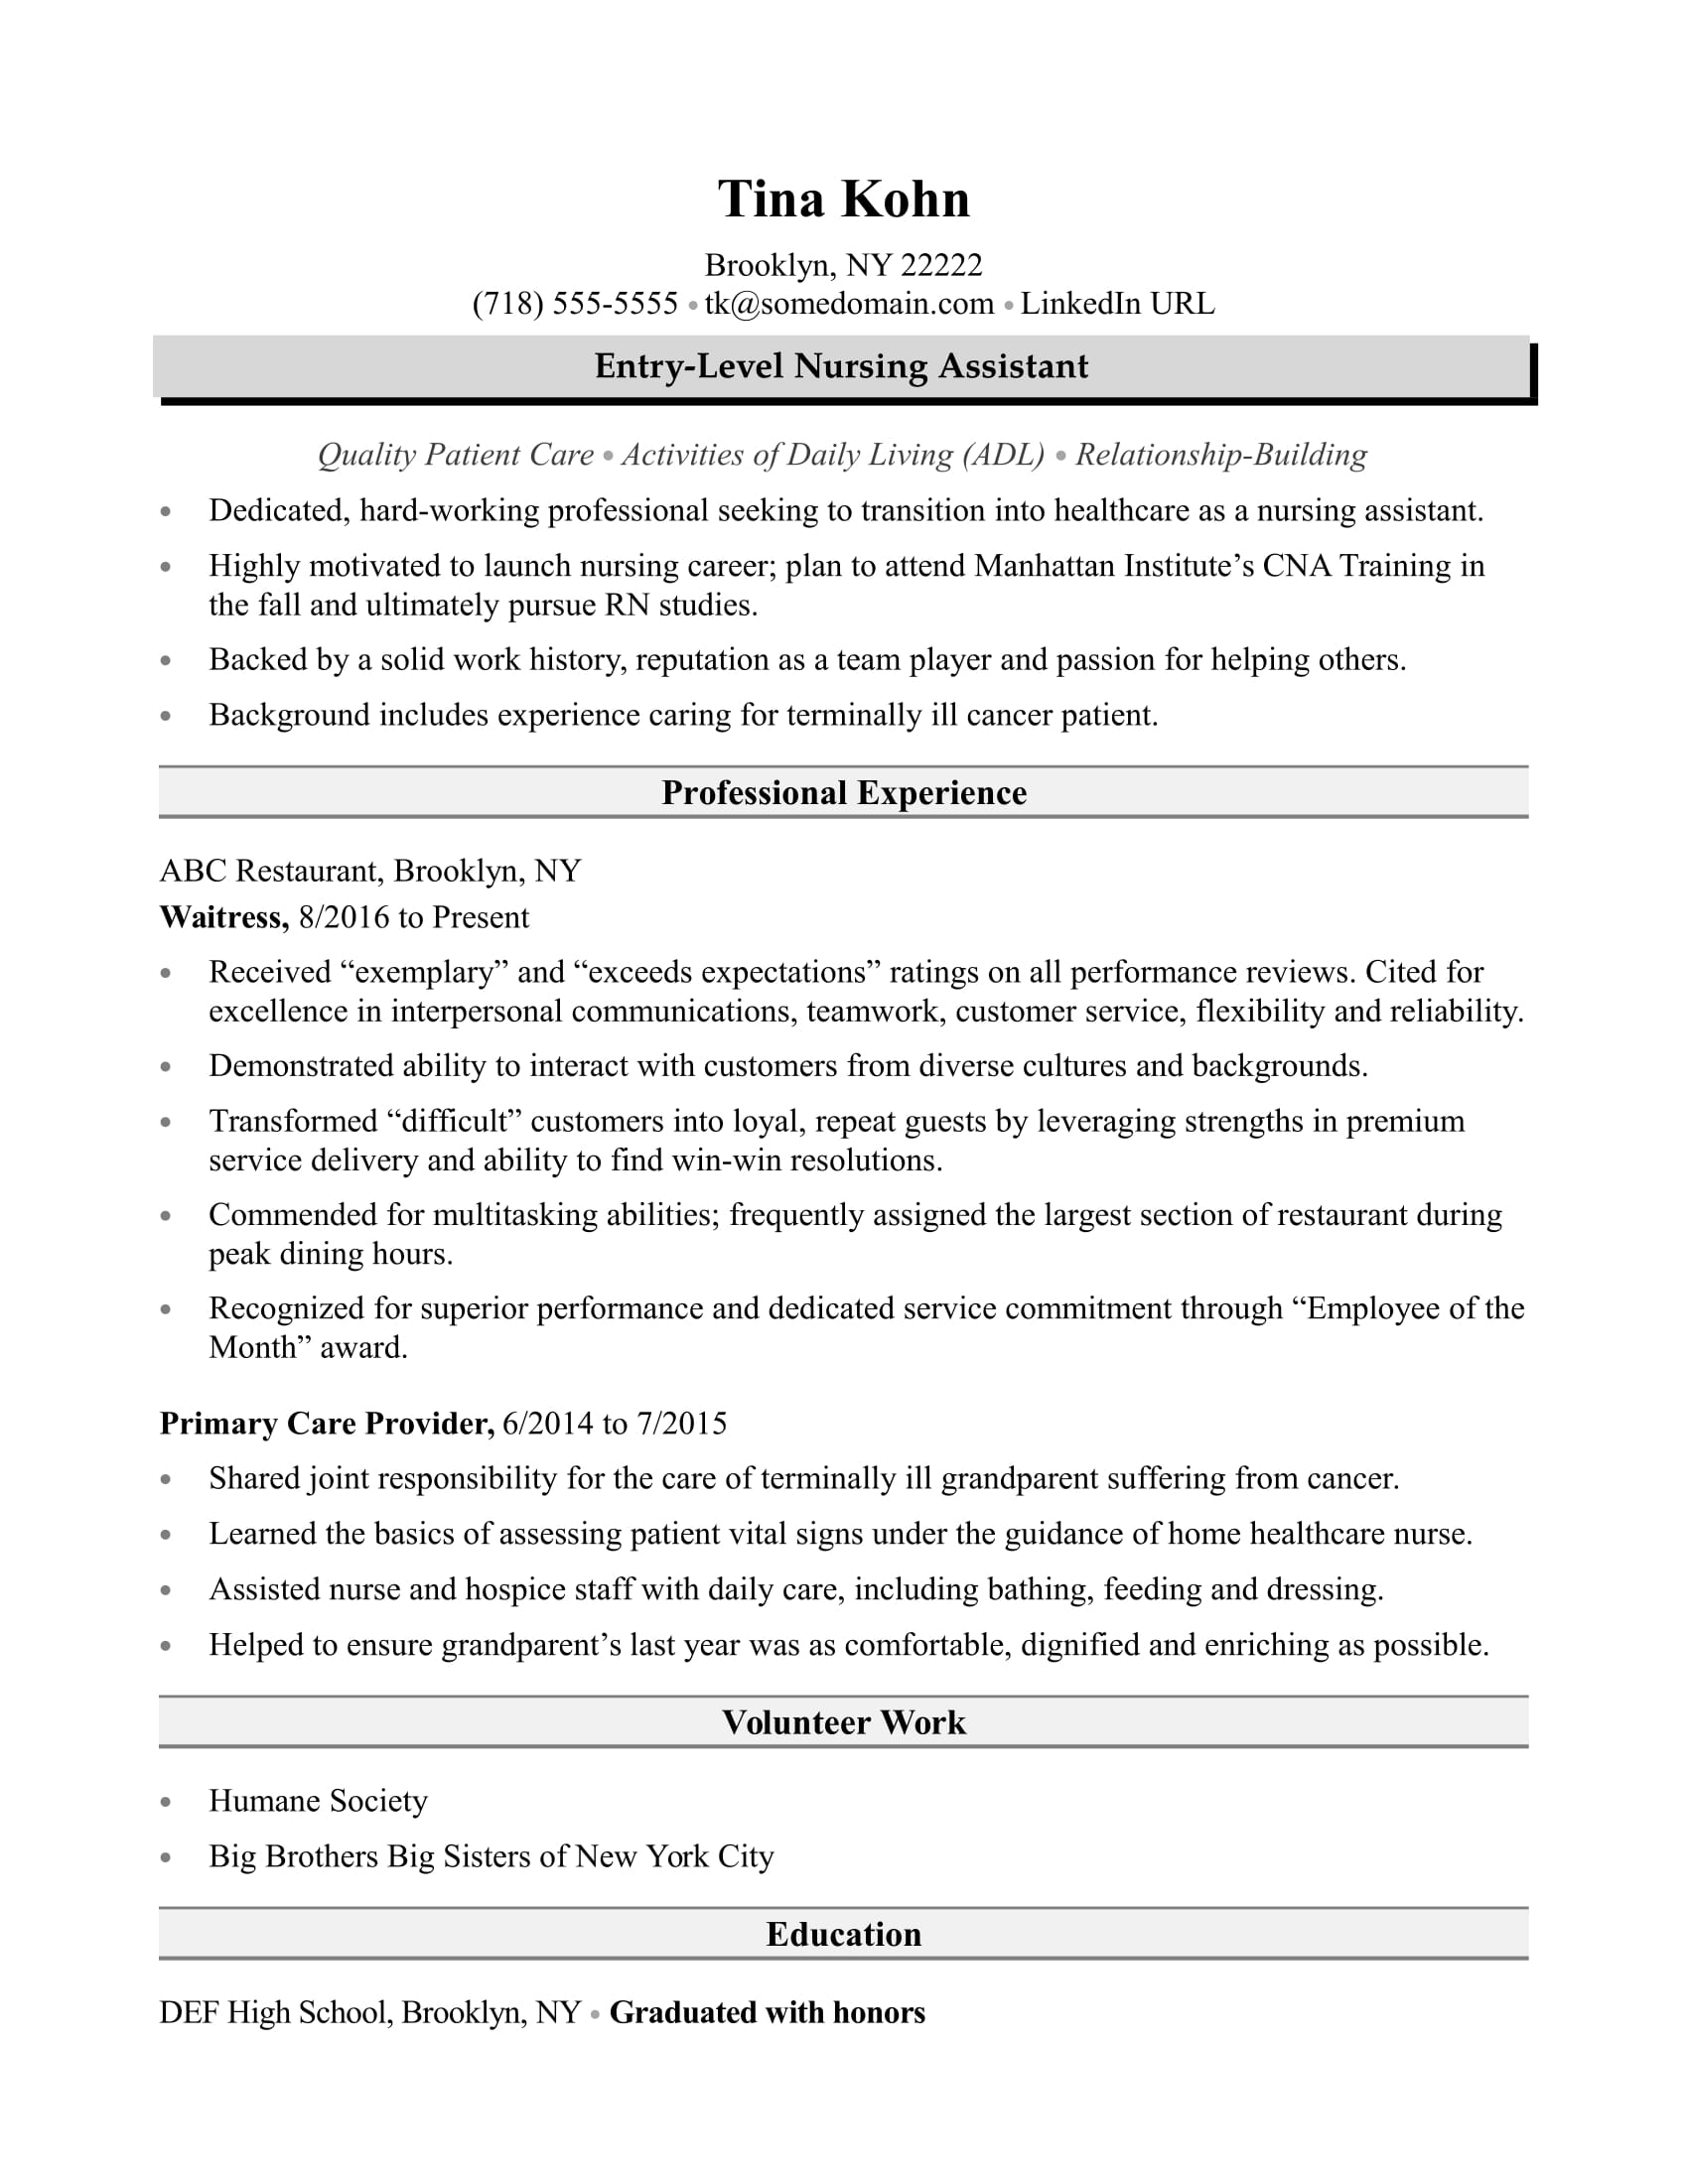 nursing assistant resume sample - Certified Nursing Assistant Resume Samples